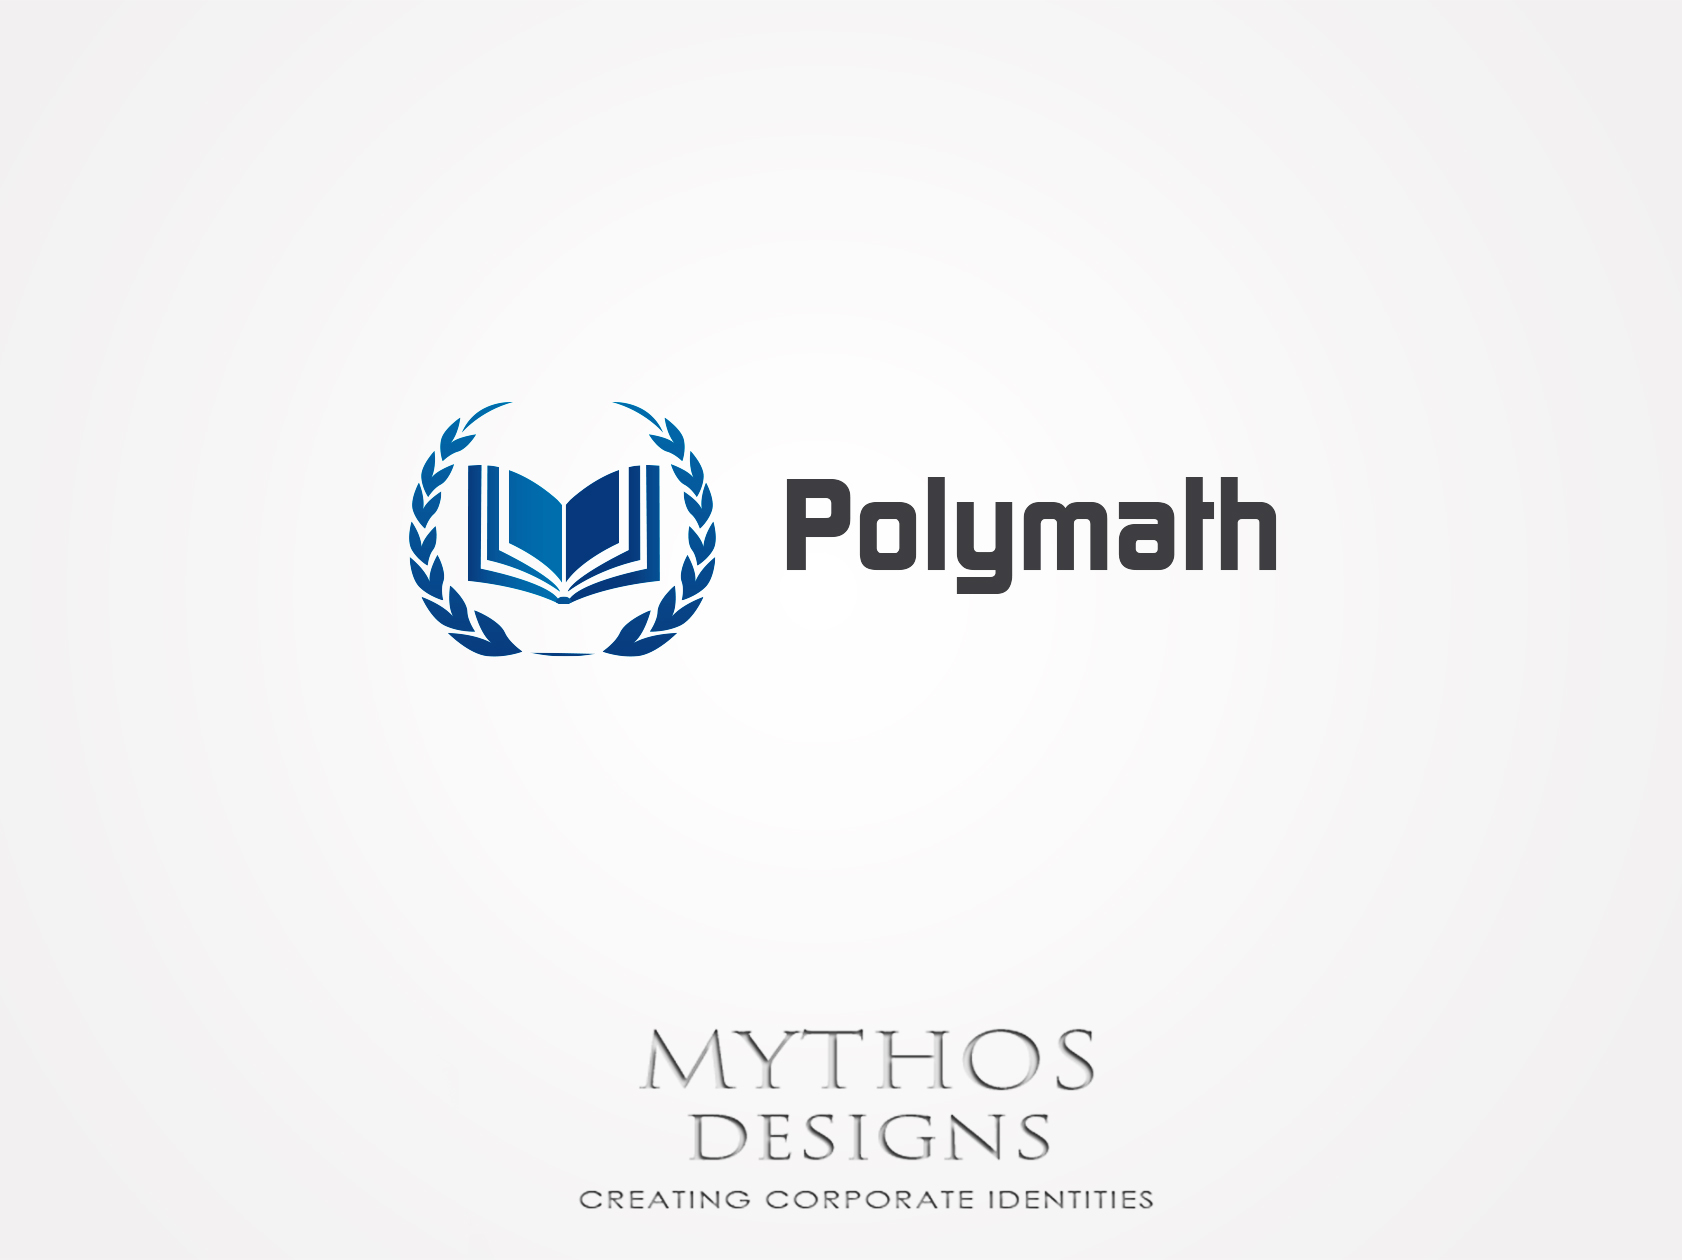 Logo Design by Mythos Designs - Entry No. 34 in the Logo Design Contest Imaginative Logo Design for Polymath.